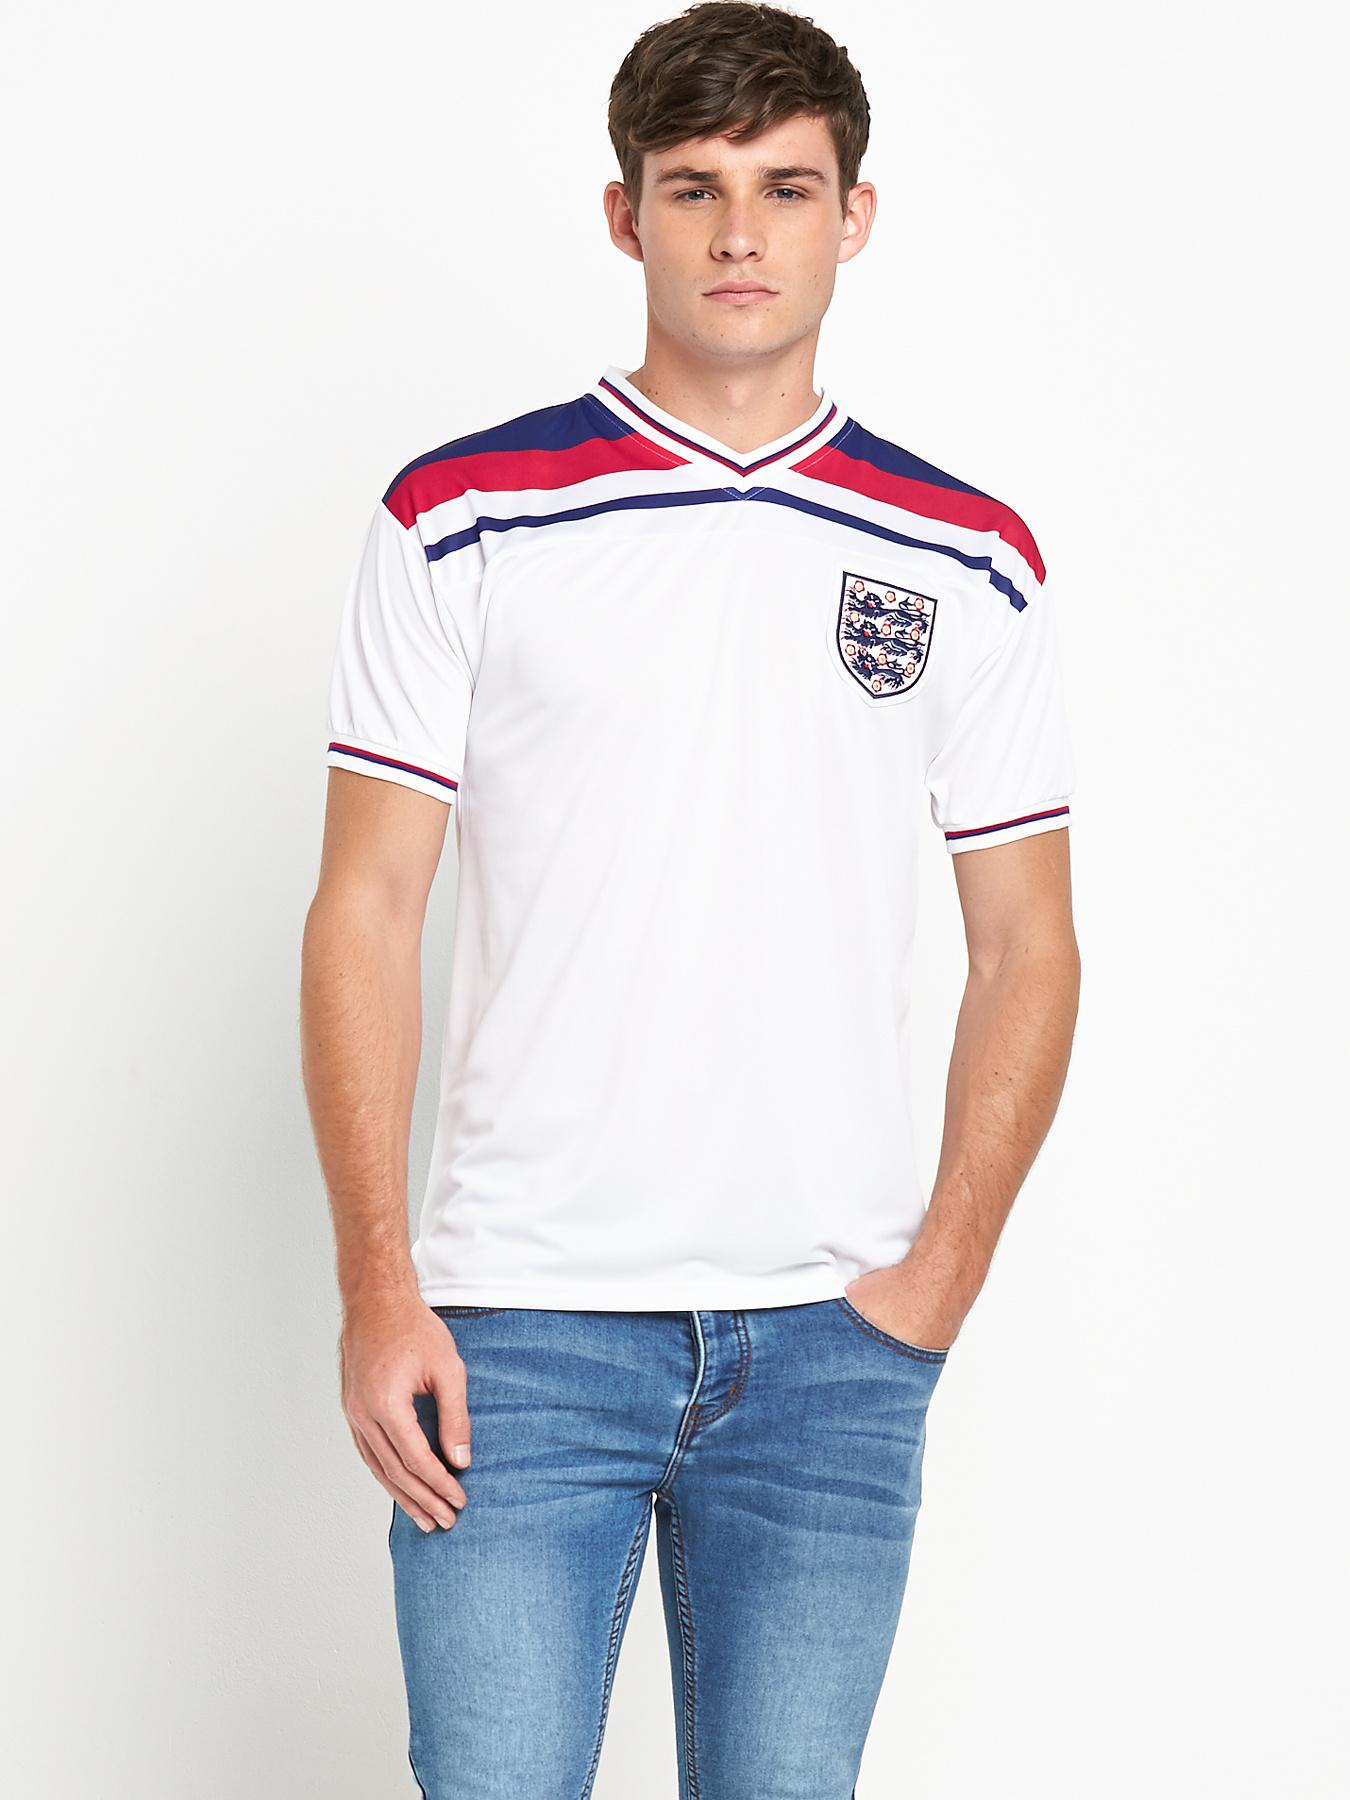 England Mens 1982 World Cup Finals Shirt - White, White